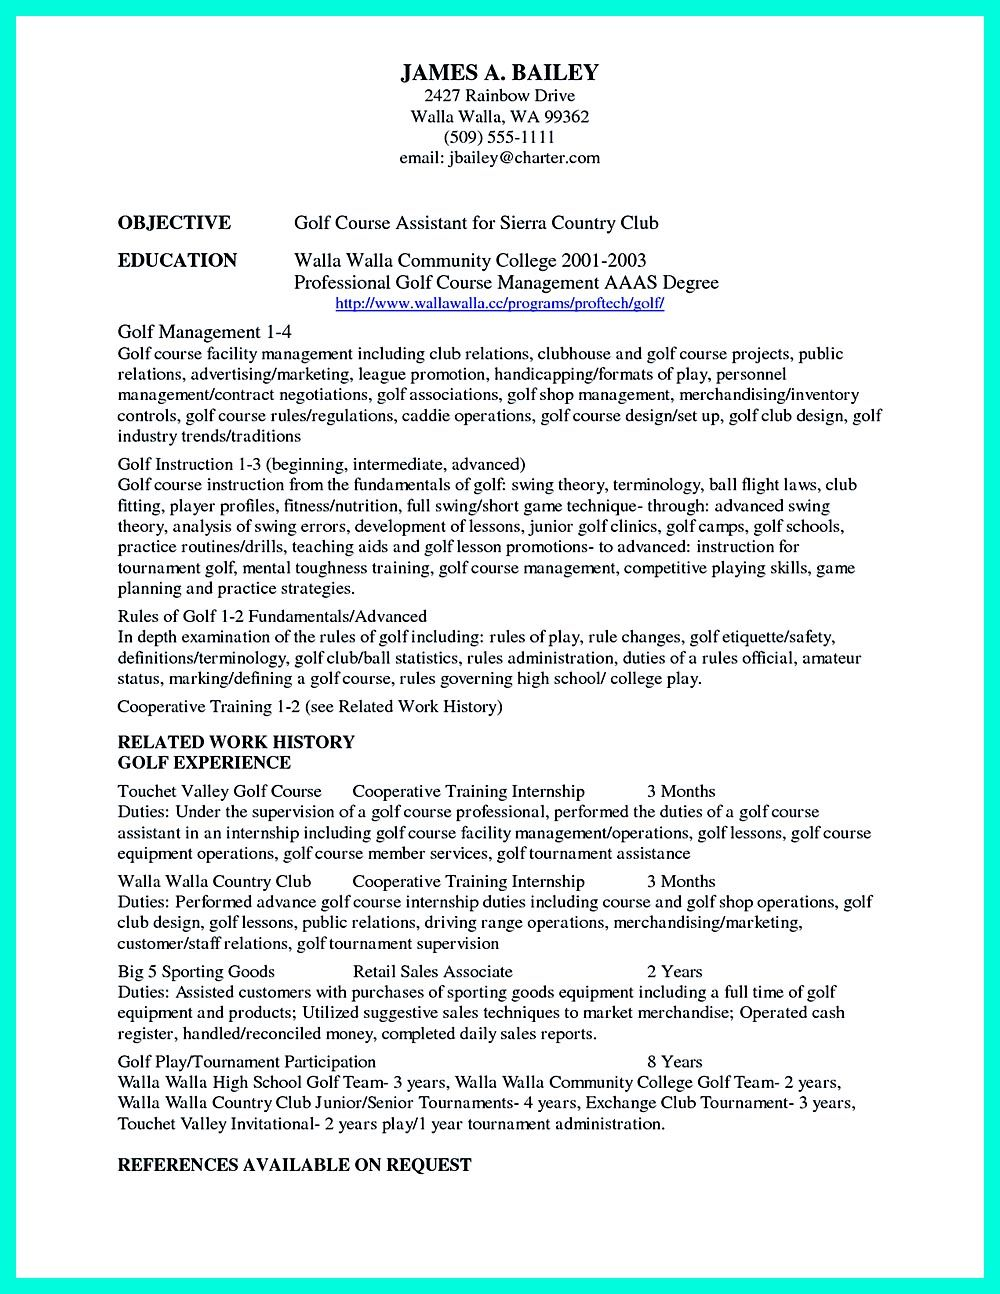 Charming It Is Necessary To Make Well Organized College Golf Resume. A Well  Organized And Well Written College Golf Letter And Resume Is Good If You  Update It .  Well Written Resume